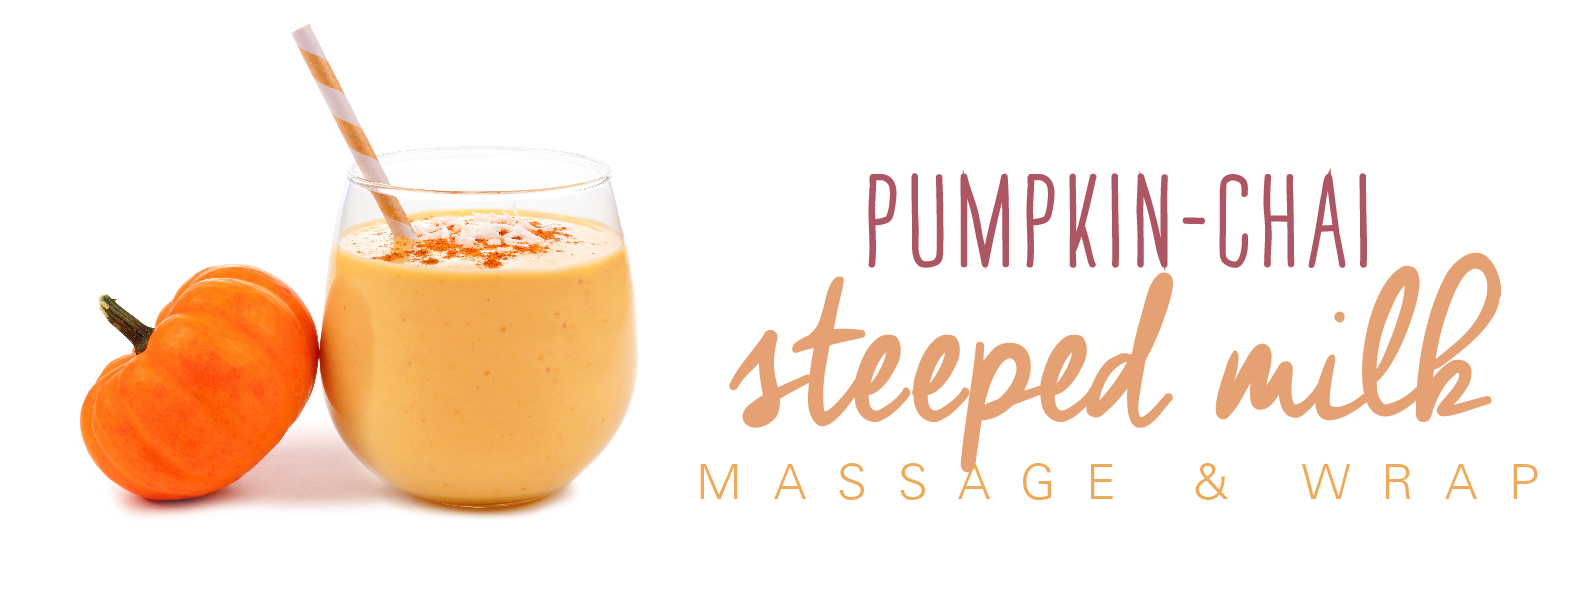 pumpkin-chai-steeped-milk-massage-and-wrap_copy1